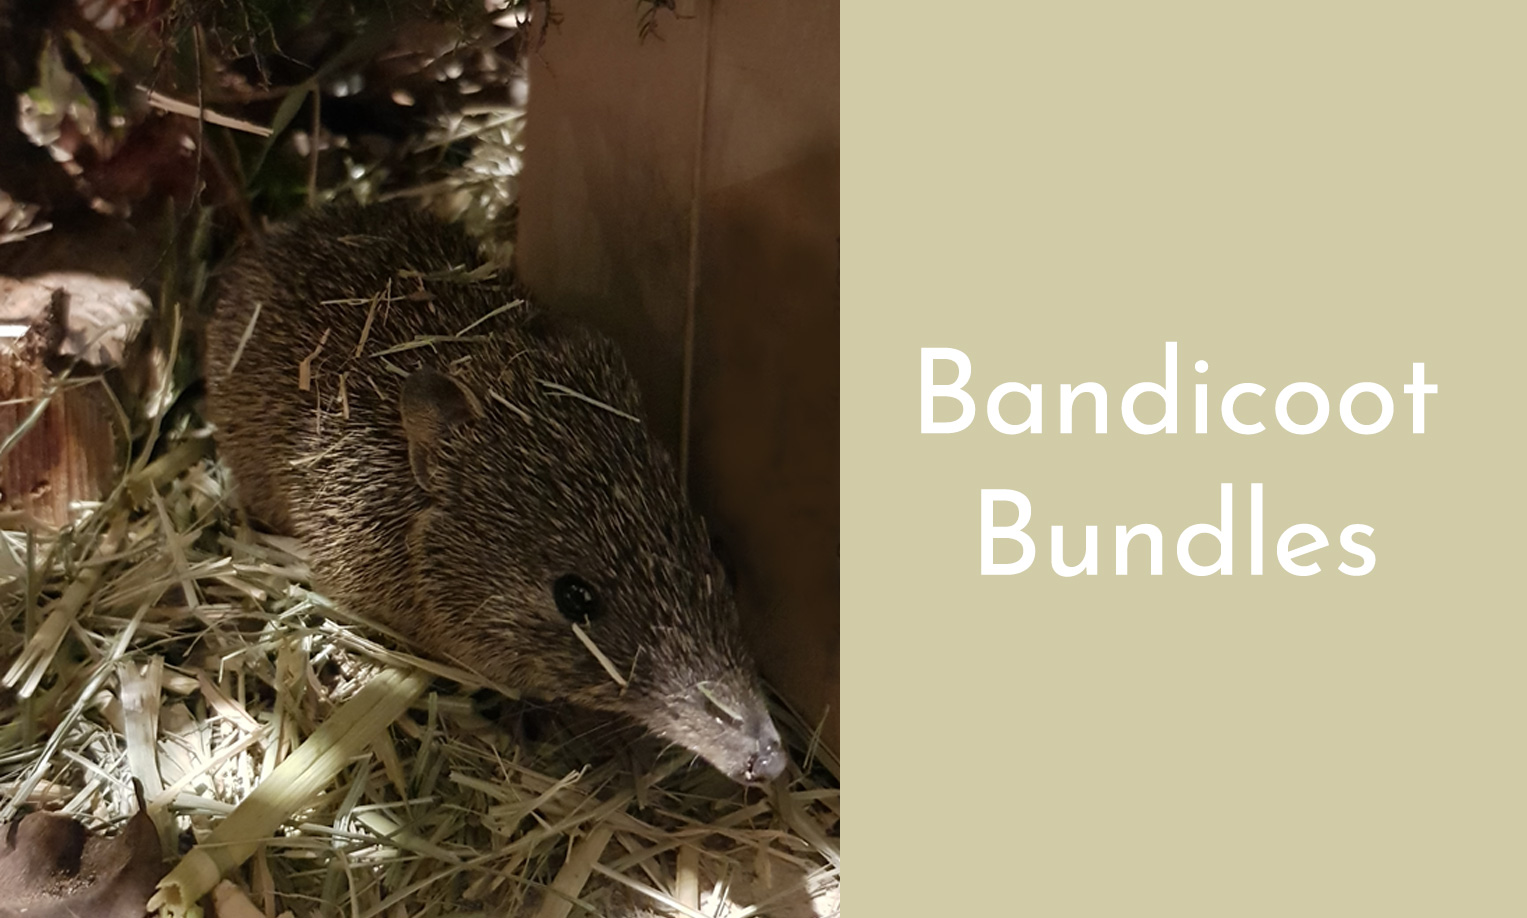 Bandicoot Bundles